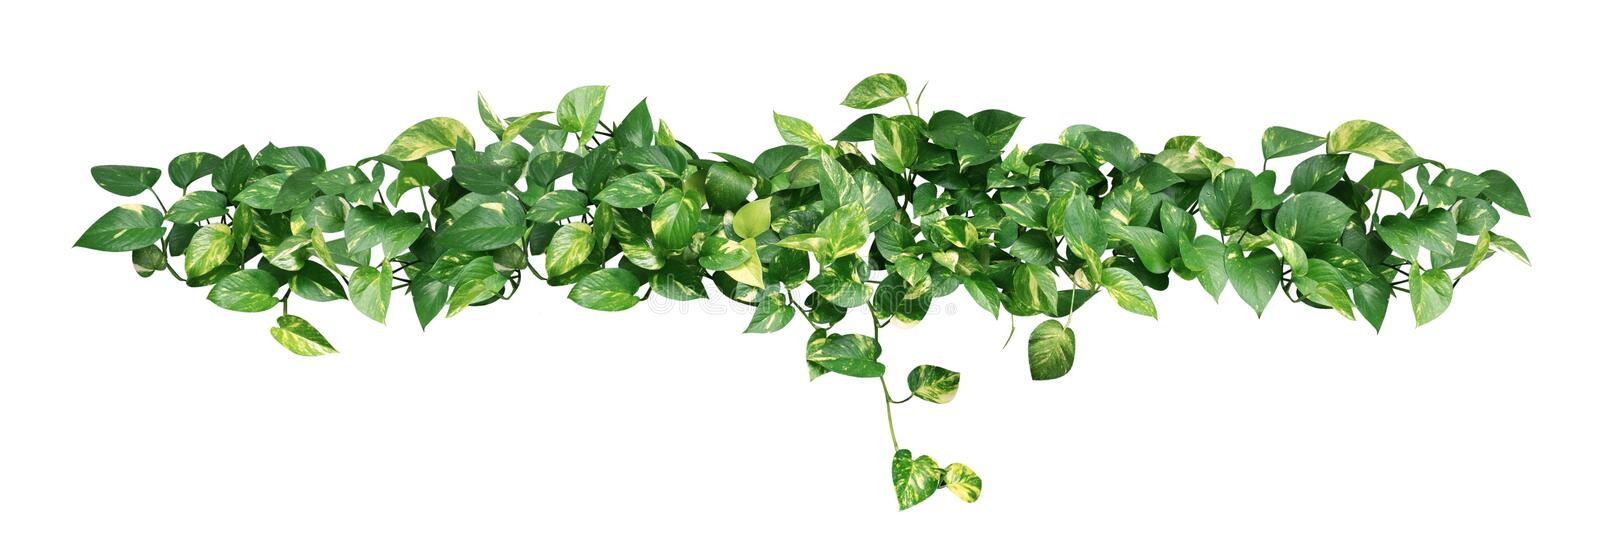 Heart shaped green yellow leaves of devil`s ivy isolated on white background, path stock photos